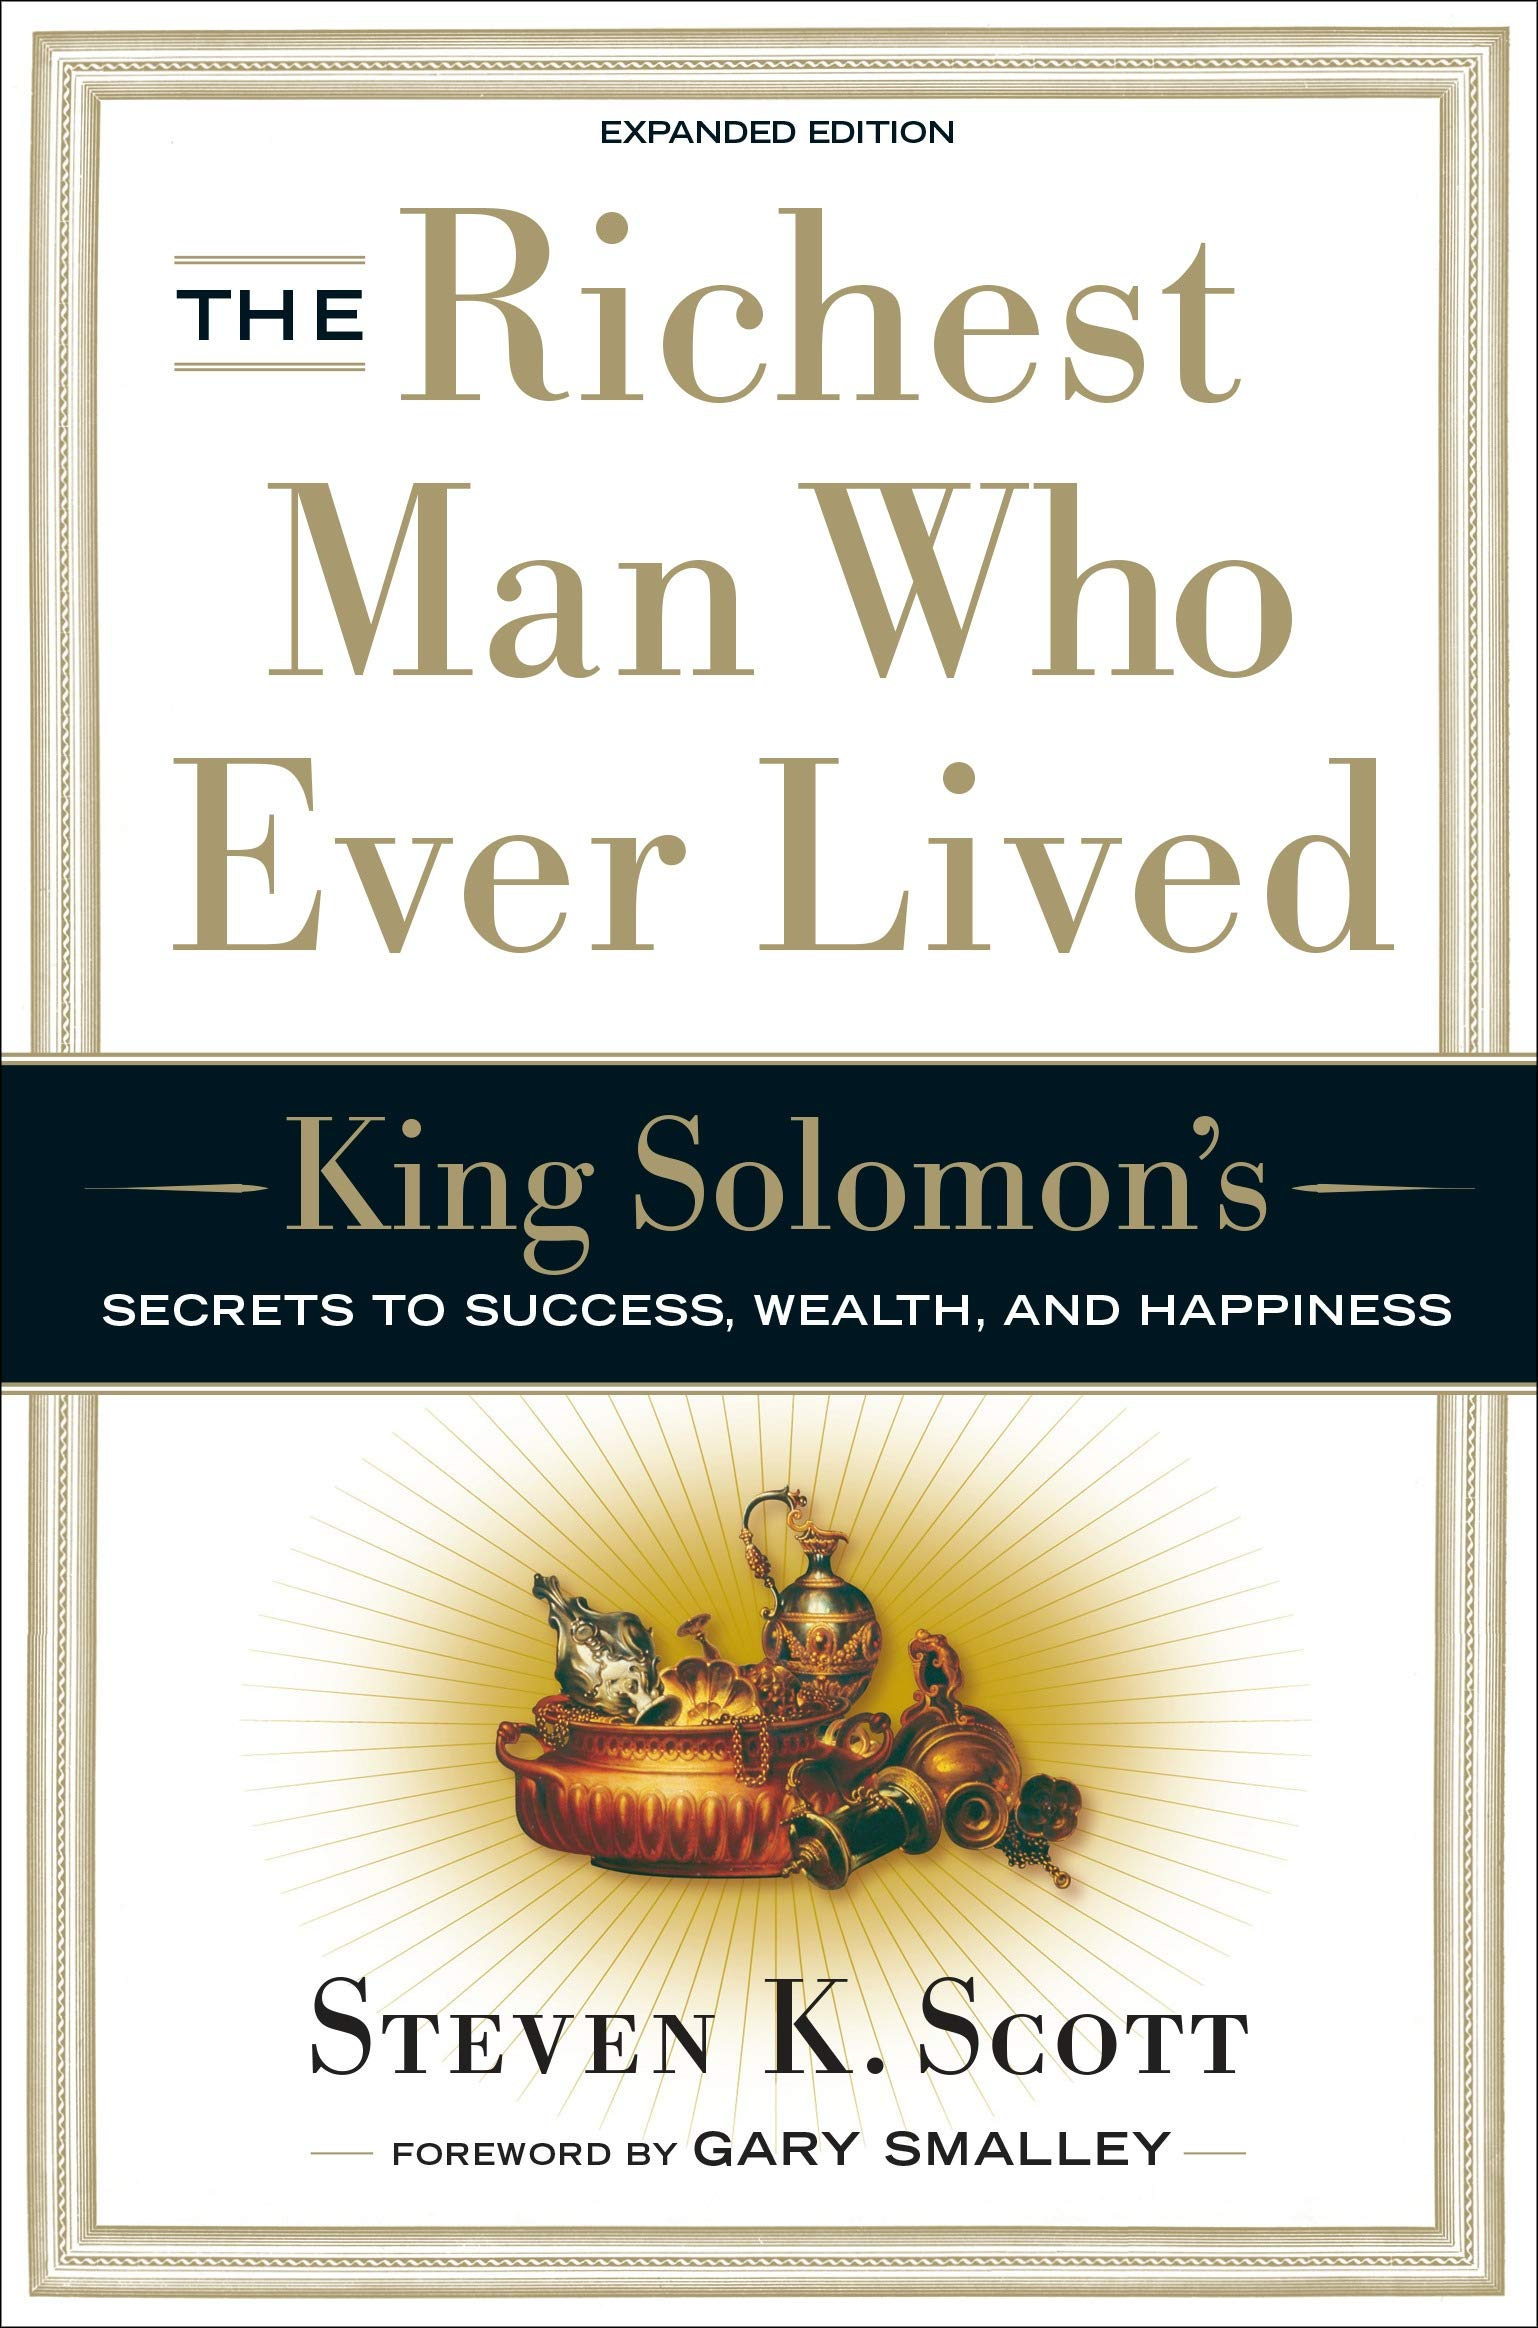 The Richest Man Who Ever Lived King Solomon S Secrets To Success Wealth And Happiness Scott Steven K 9781400071975 Amazon Com Books